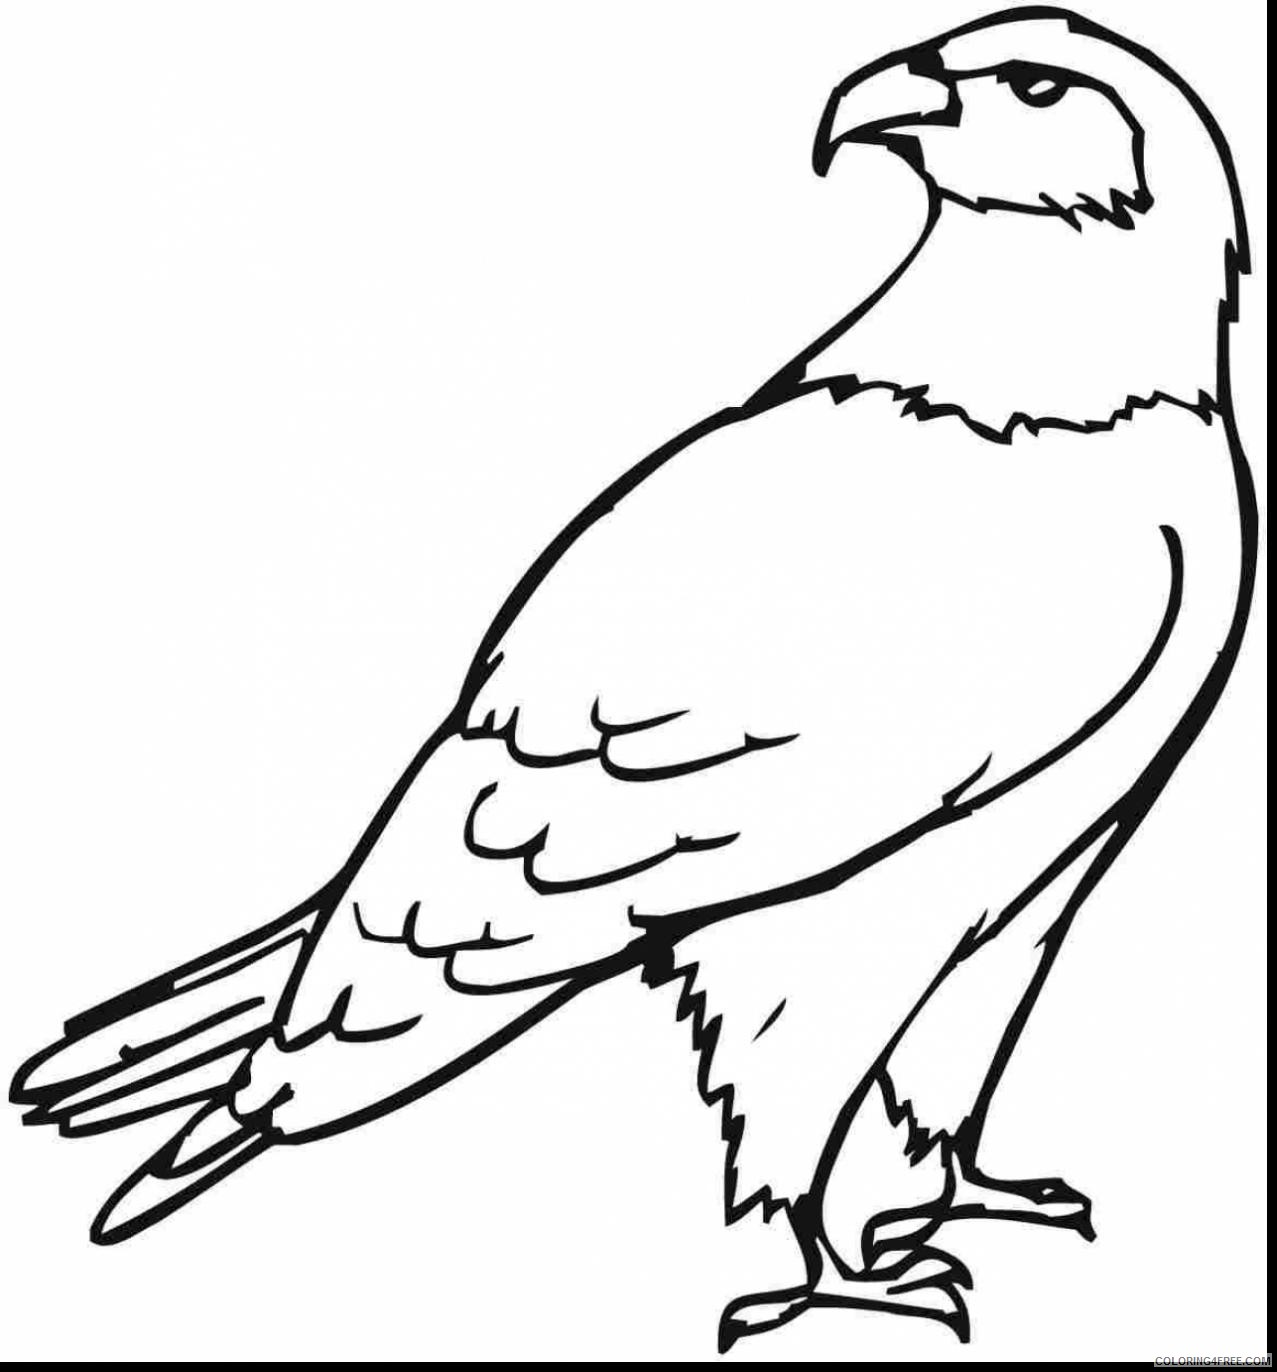 free eagle coloring pages for kids Coloring4free